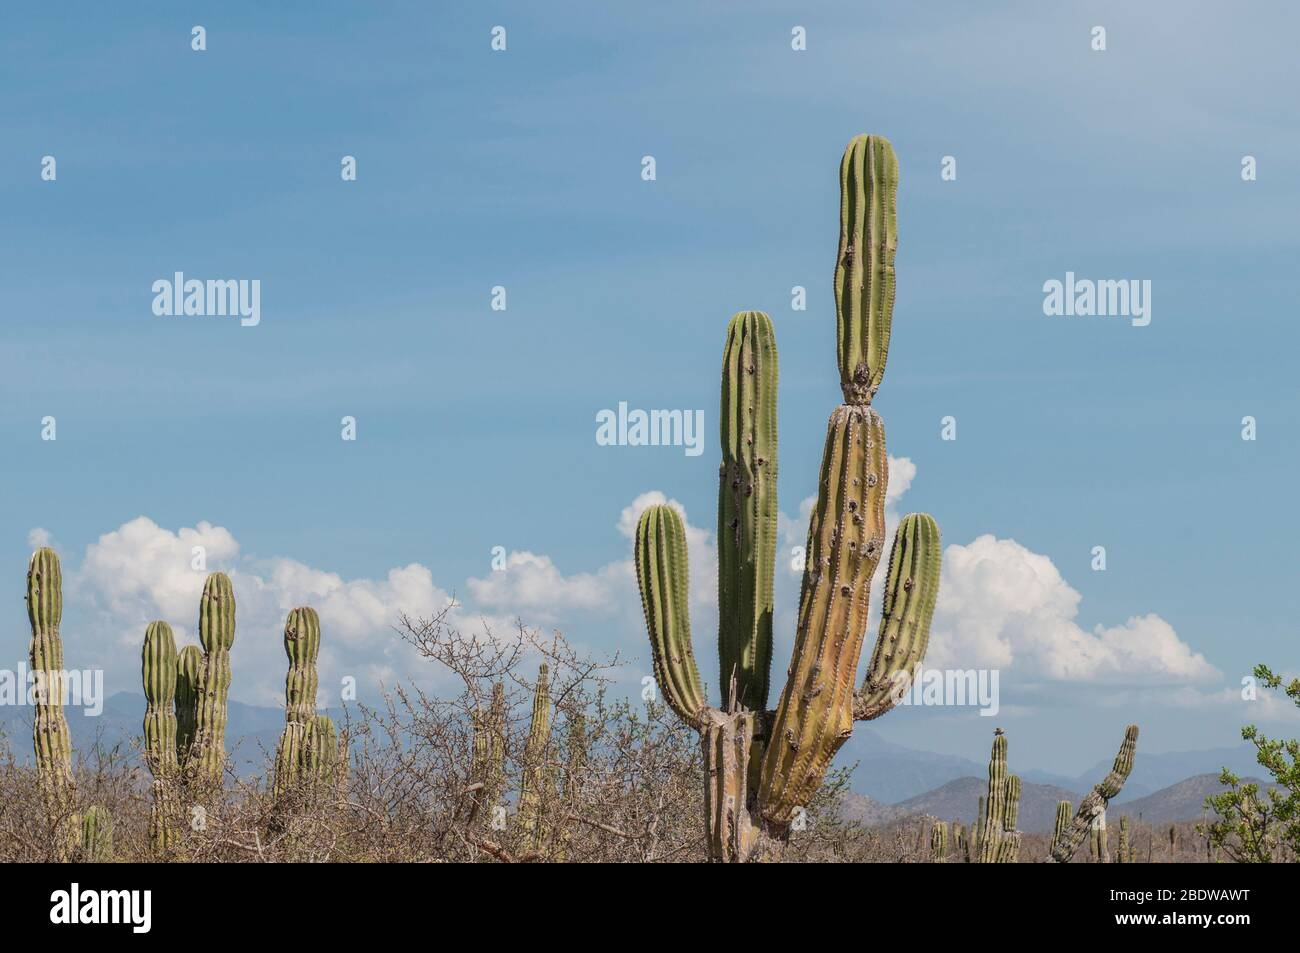 Endemic cactus in the region of the Baja California Sur State, near Todos Santos, in Mexico. Stock Photo